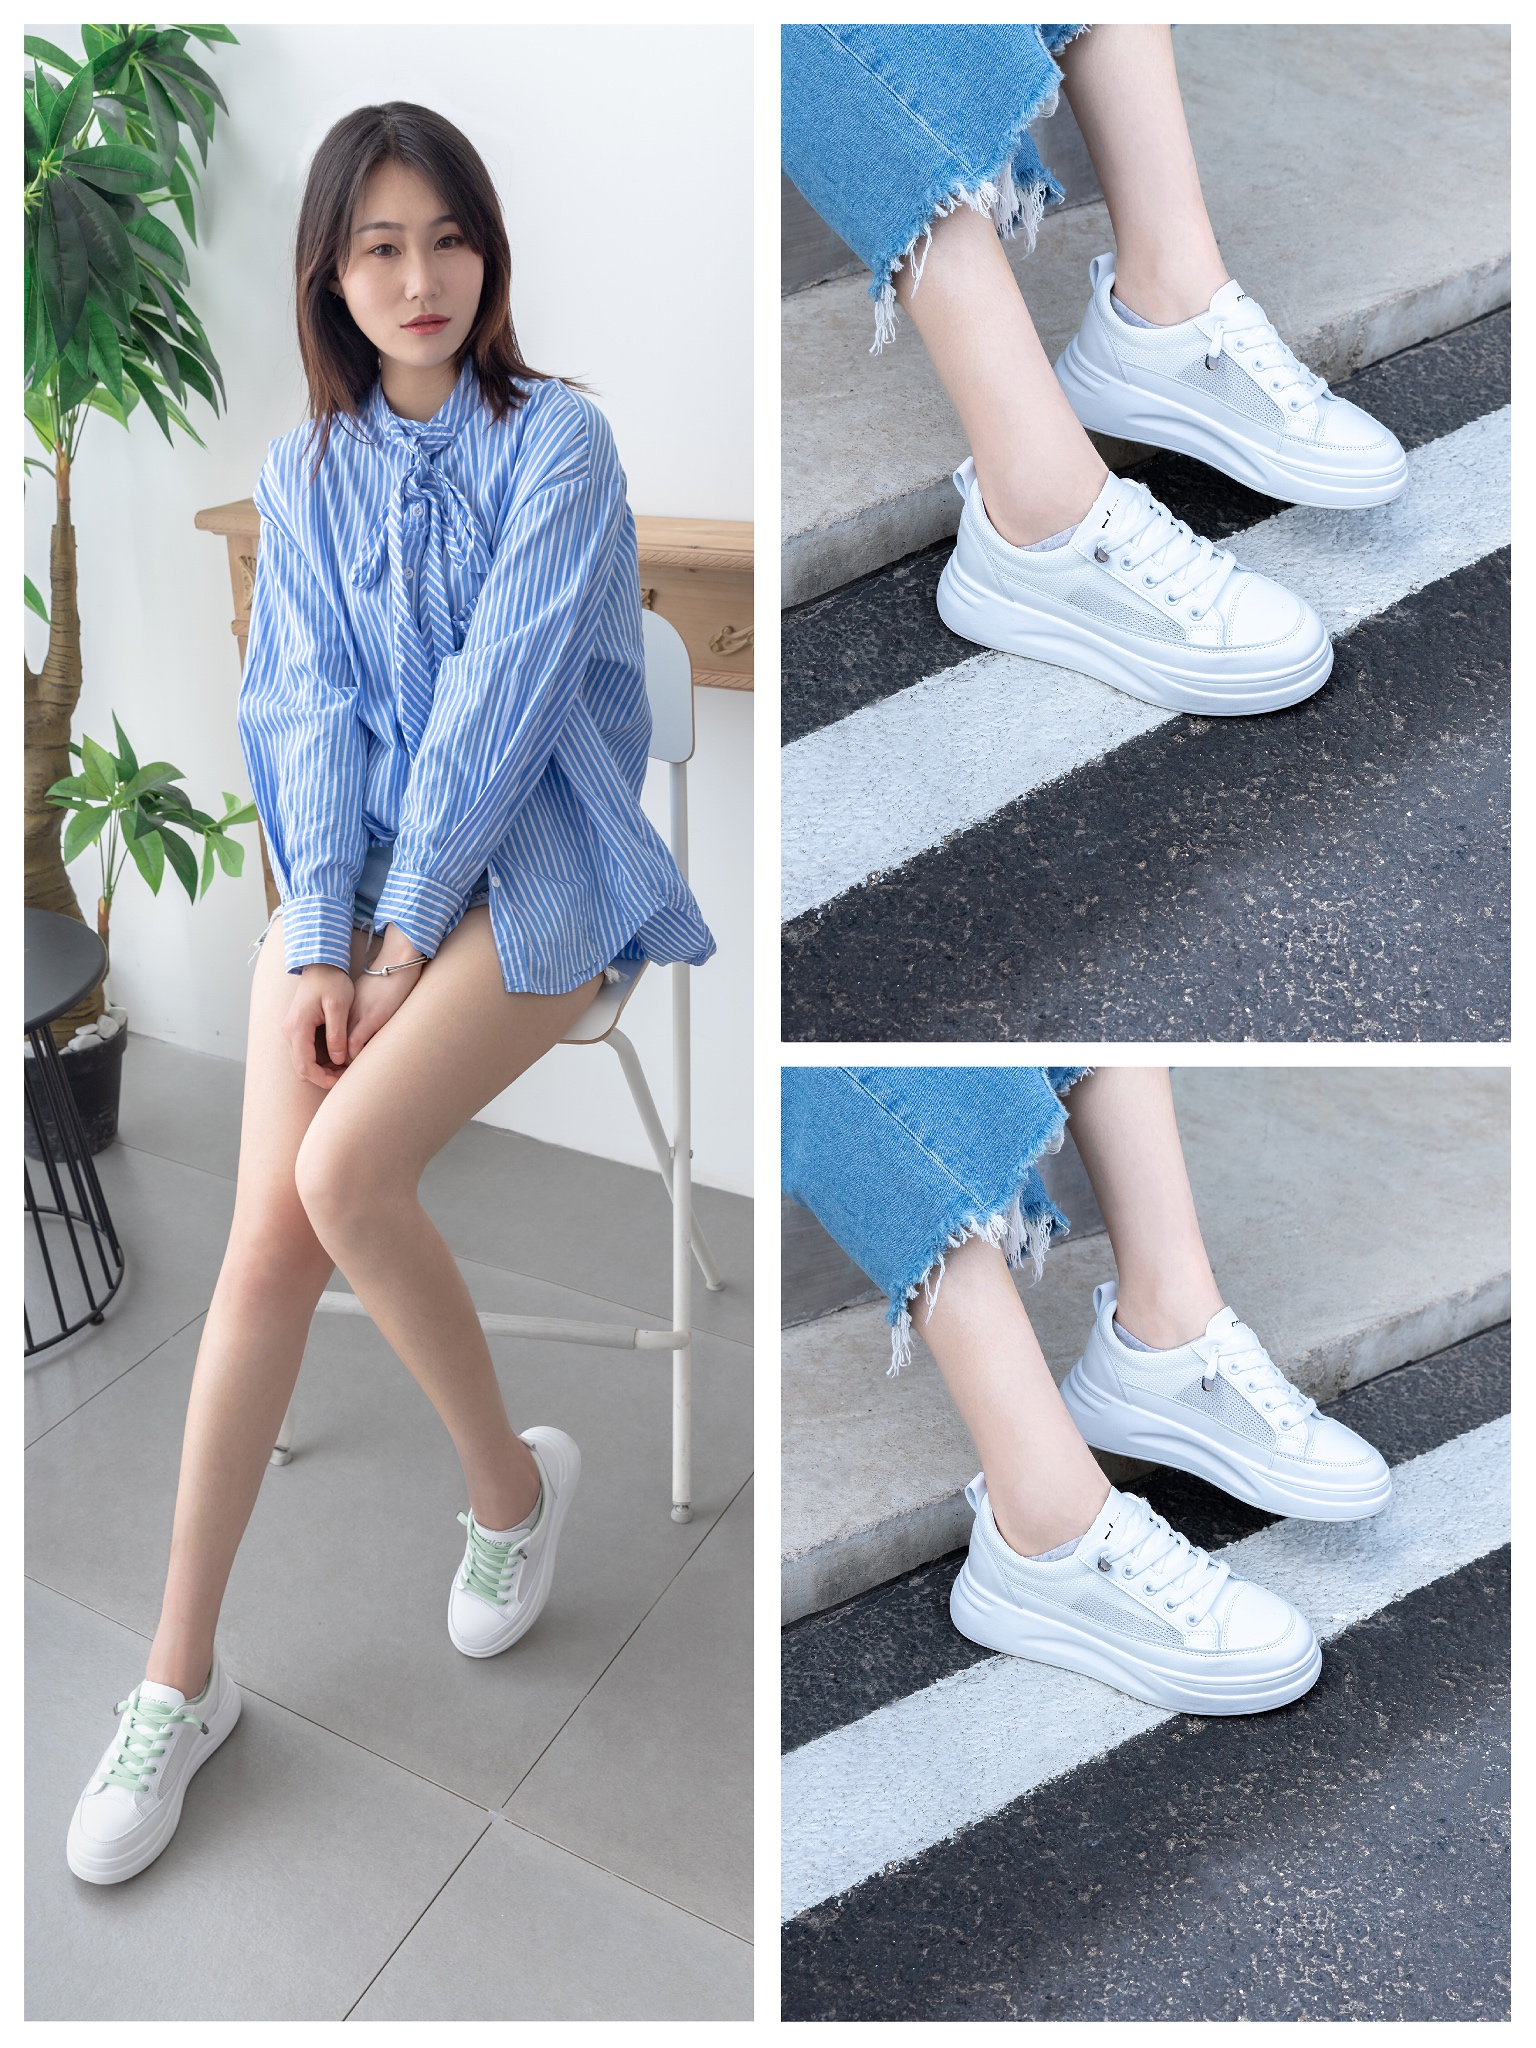 Small white shoes 2020 summer new mesh surface breathable versatile increase 4cm trend canvas father and daughter thick sole